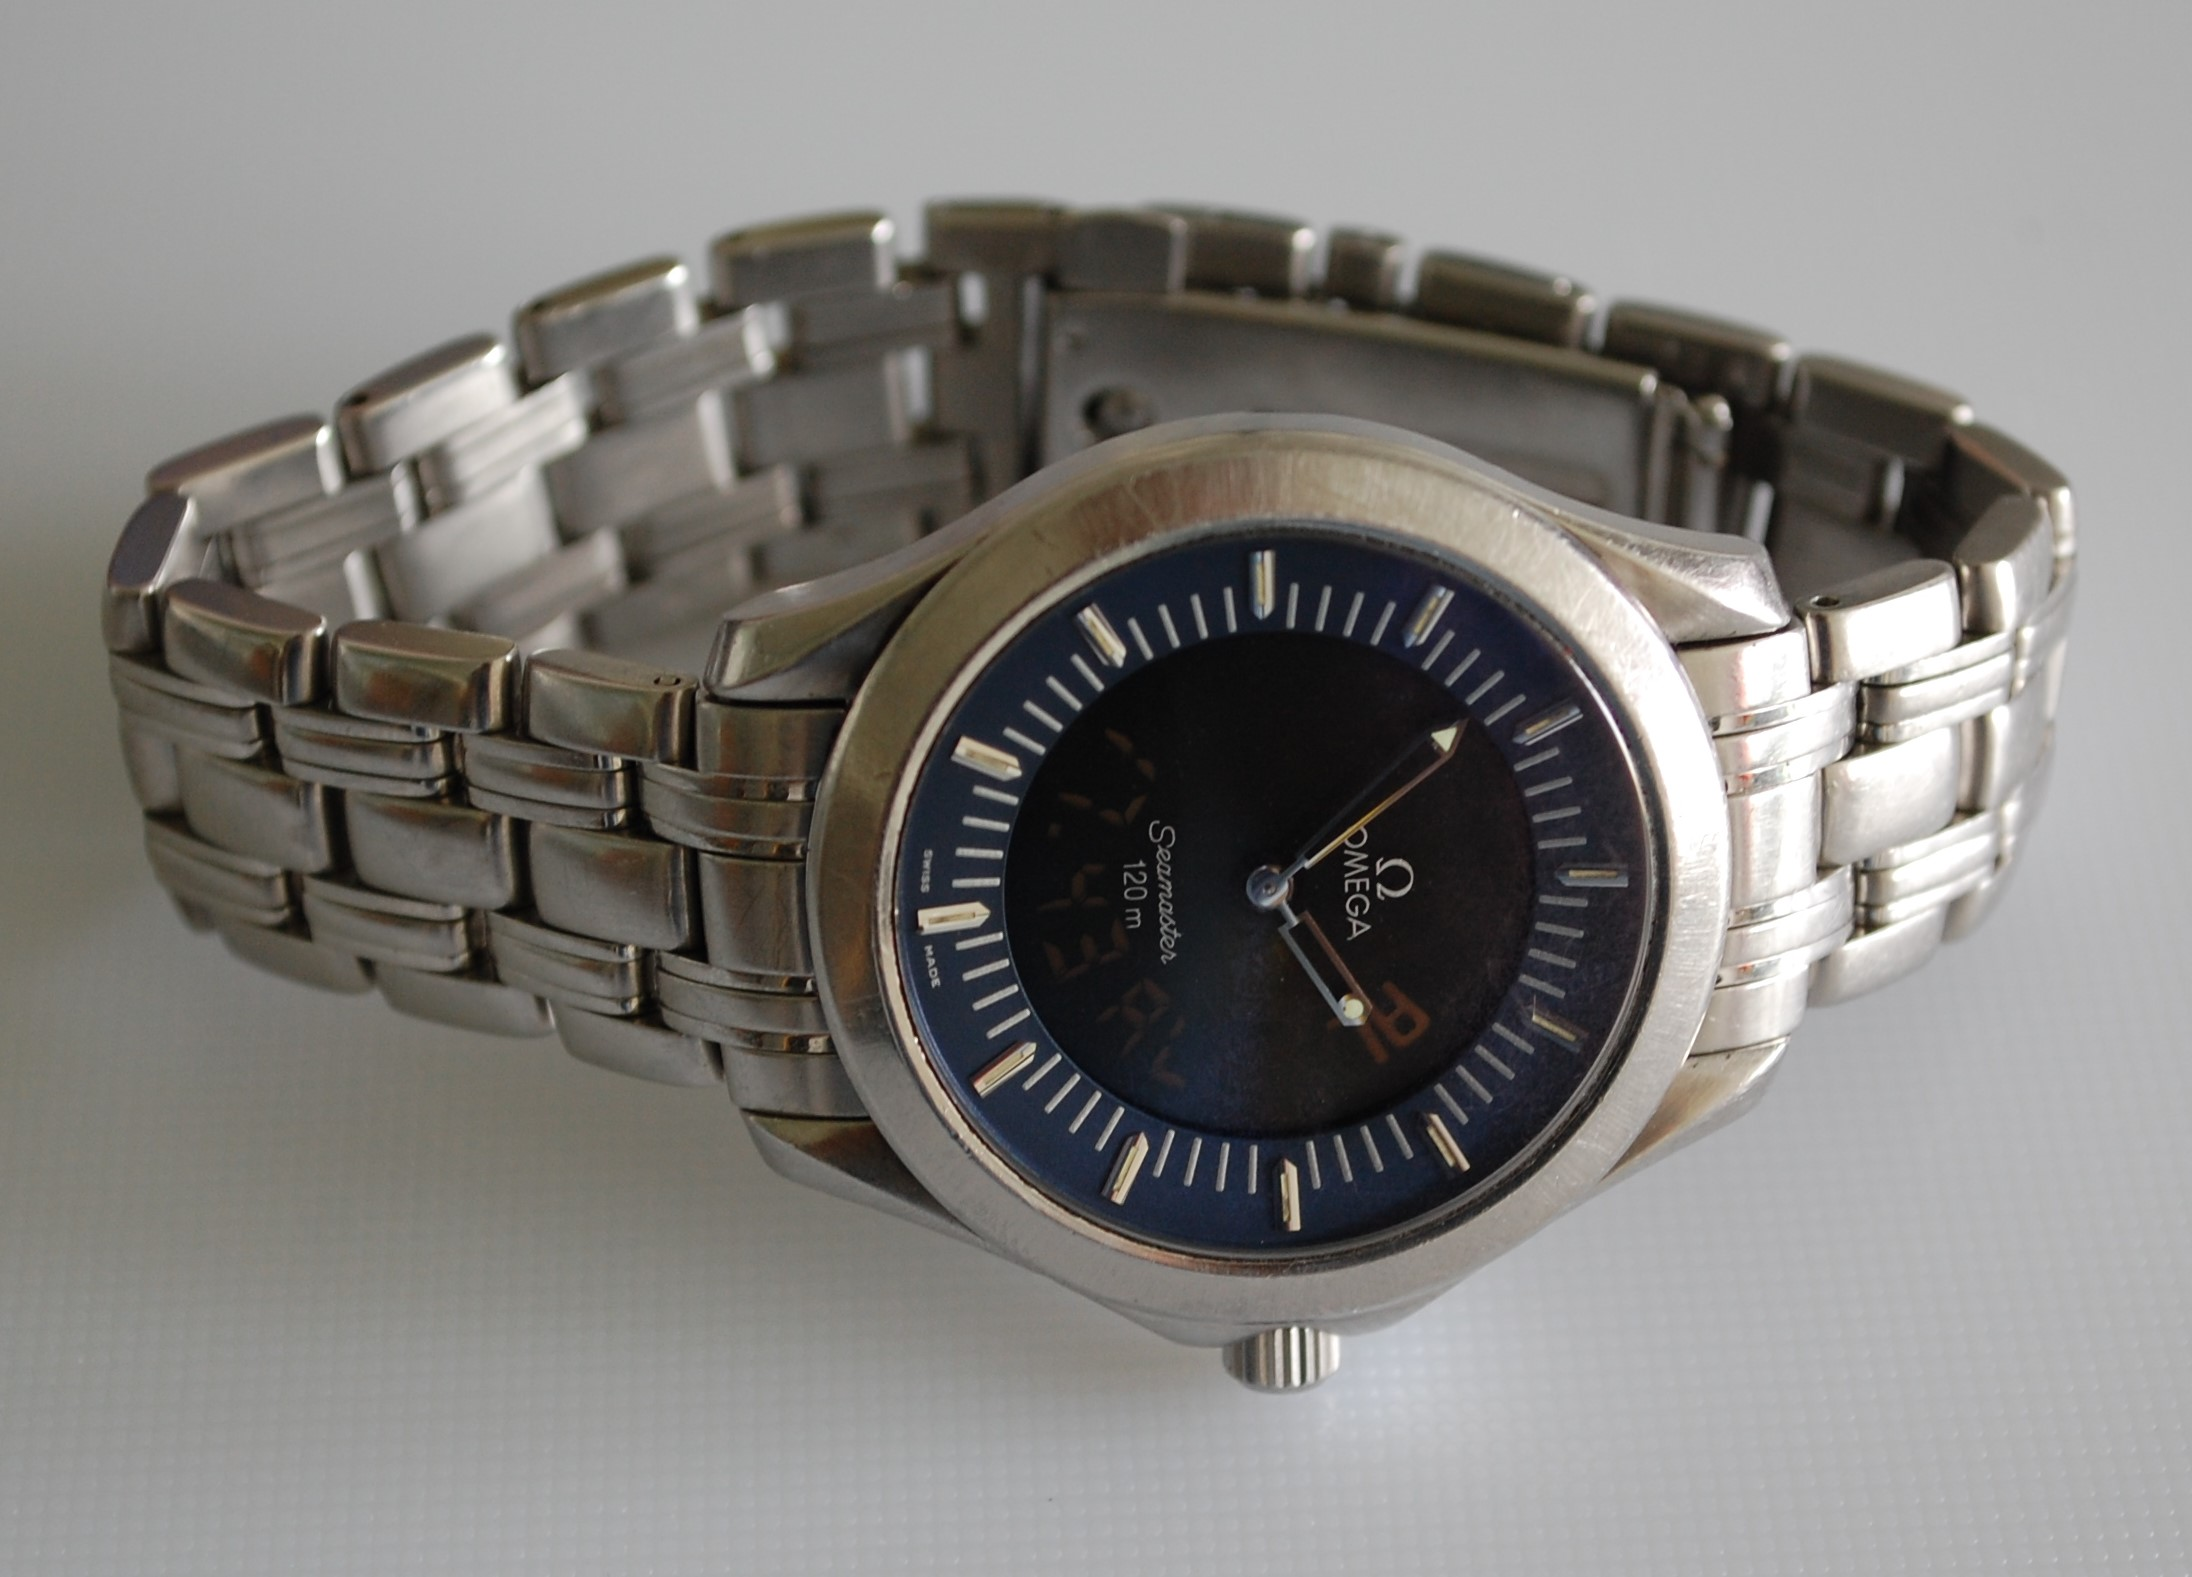 SOLD 1998 Omega Seamaster 120m Multifunction - Birth Year